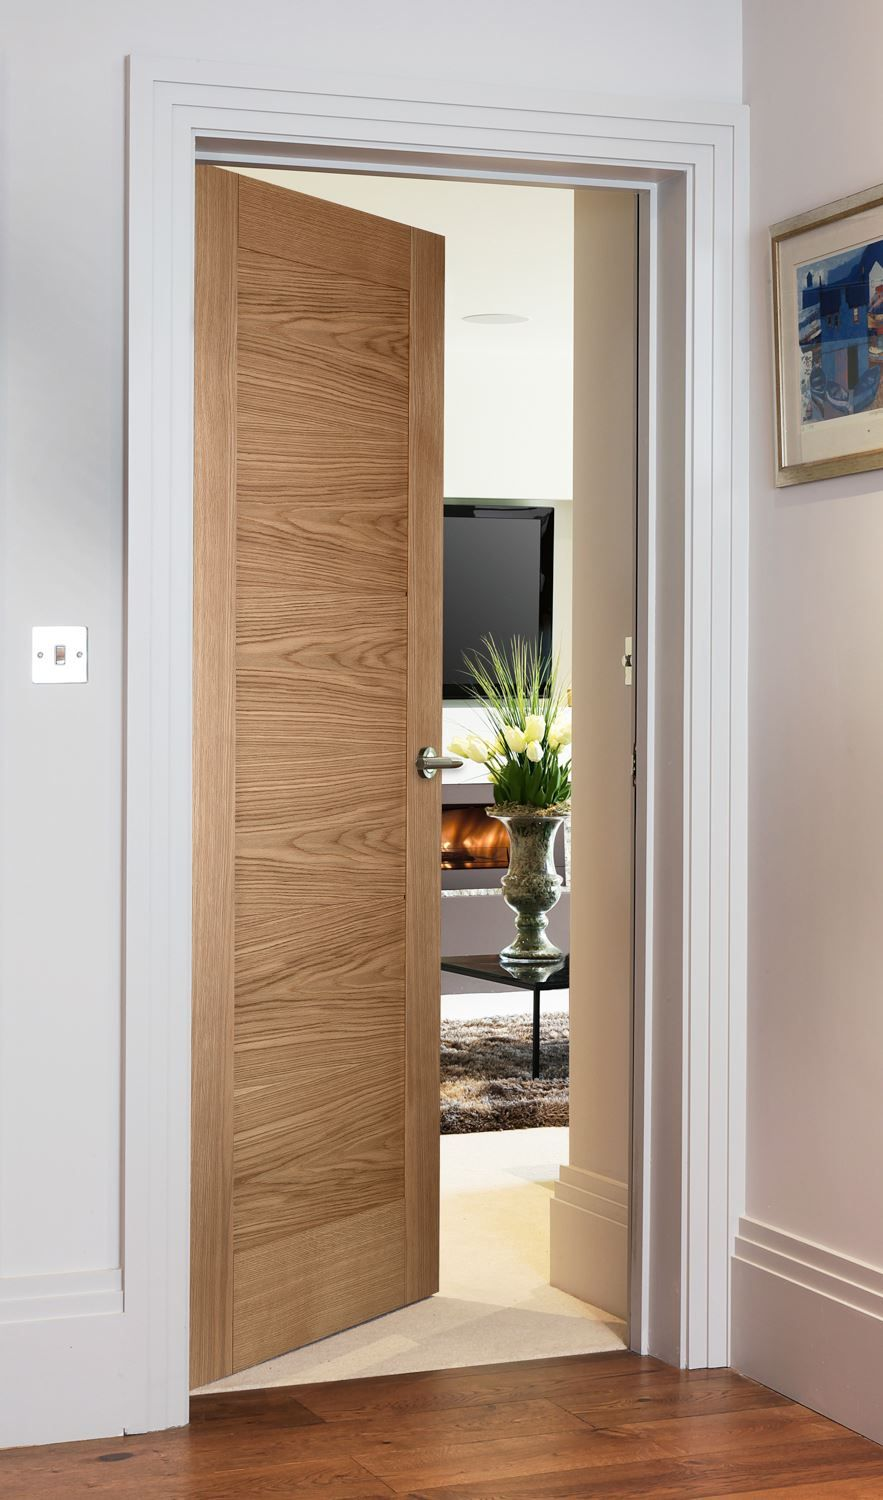 Modern Interior Doors Ideas 14: Contemporary Style Door For Modern